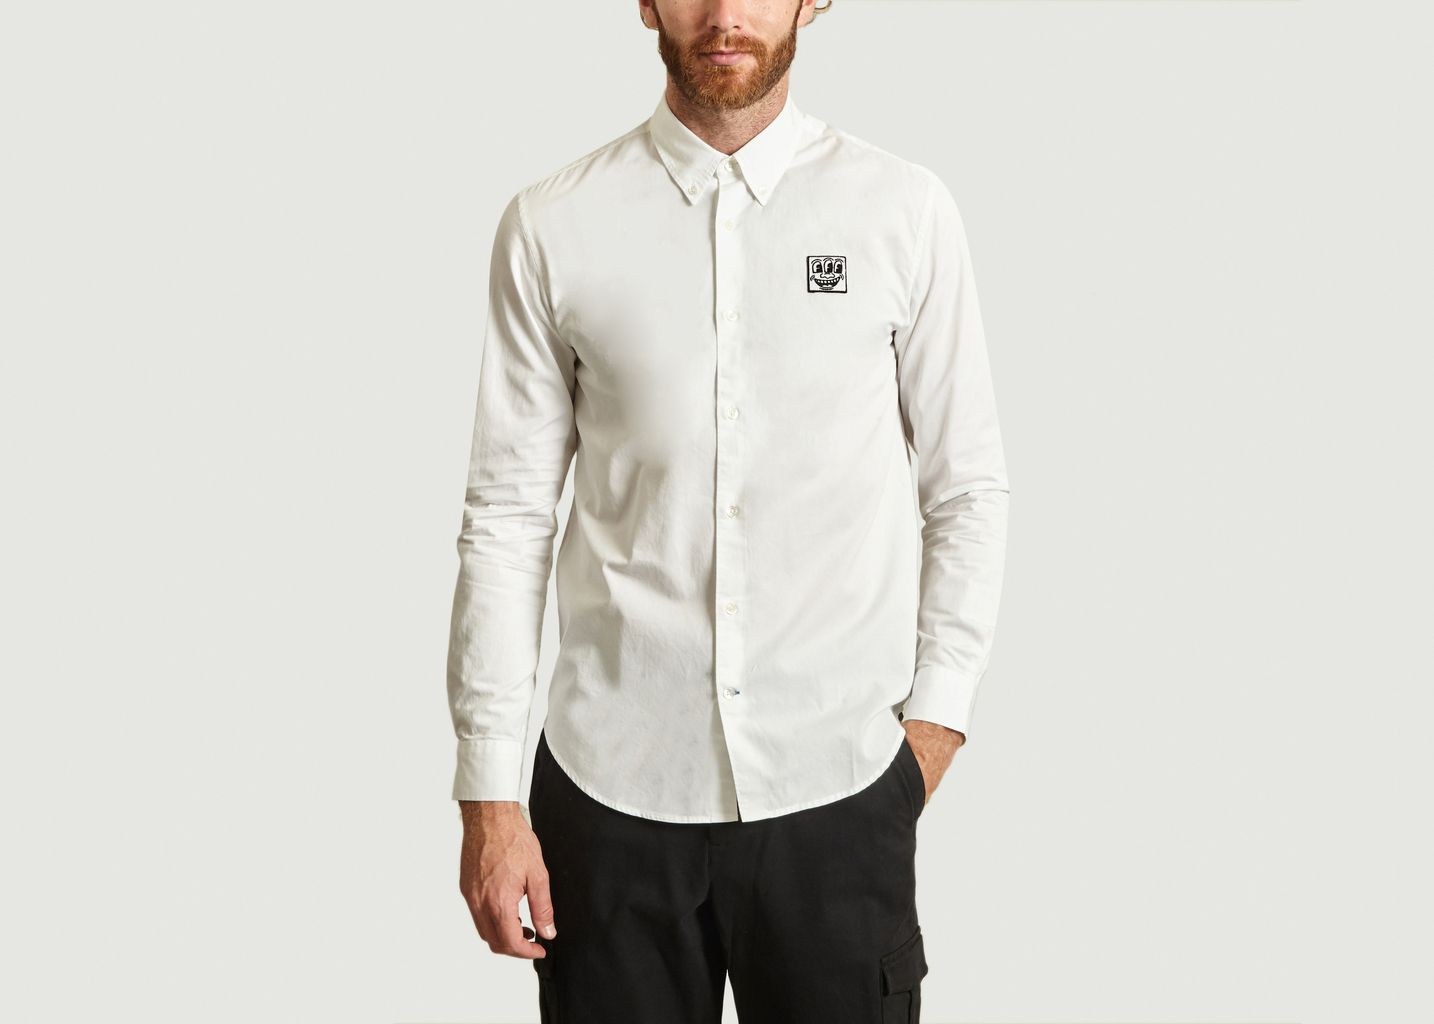 Chemise Info Patch x Keith Haring - Études